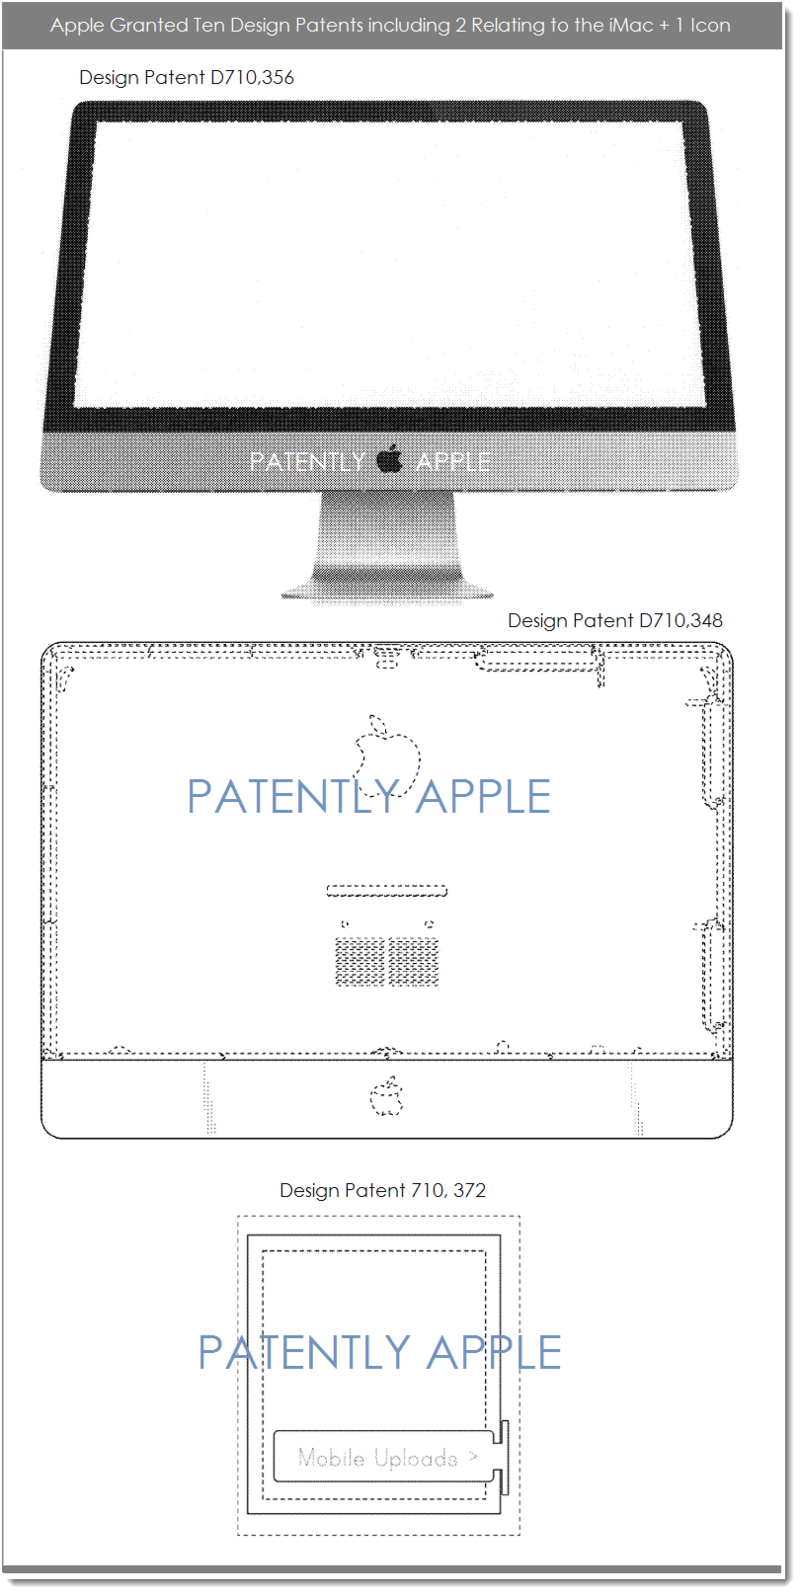 5AF APPLE GRANTED 10 DESIGN PATENTS INCLUDING IMAC AND ICON